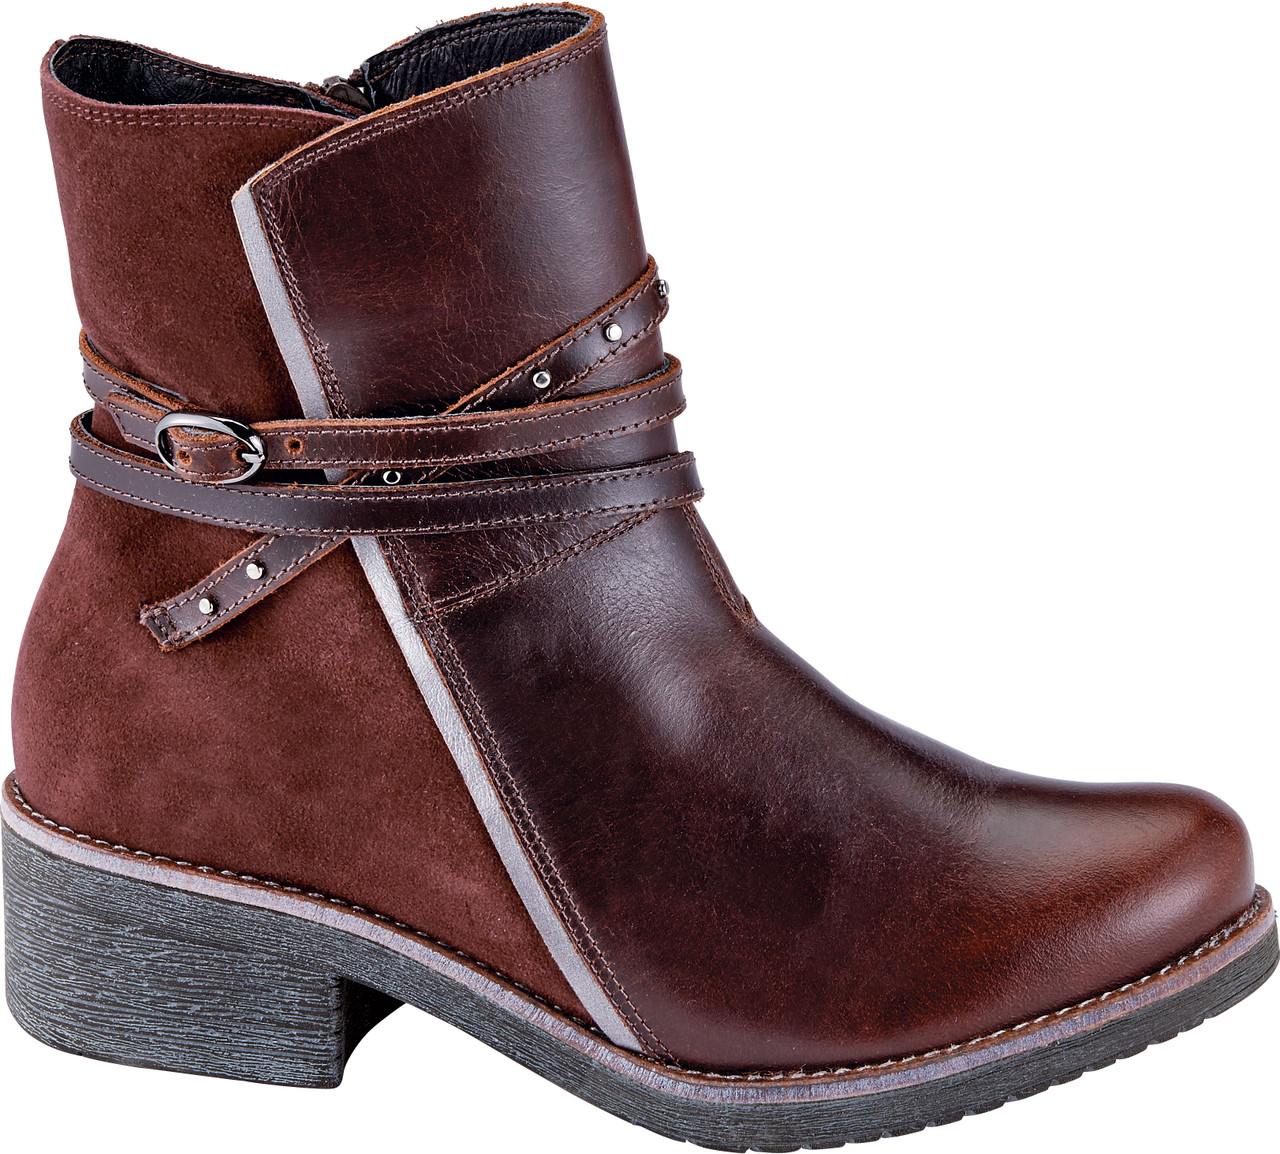 Soft Brown Leather/Rust Suede/Mirror Leather